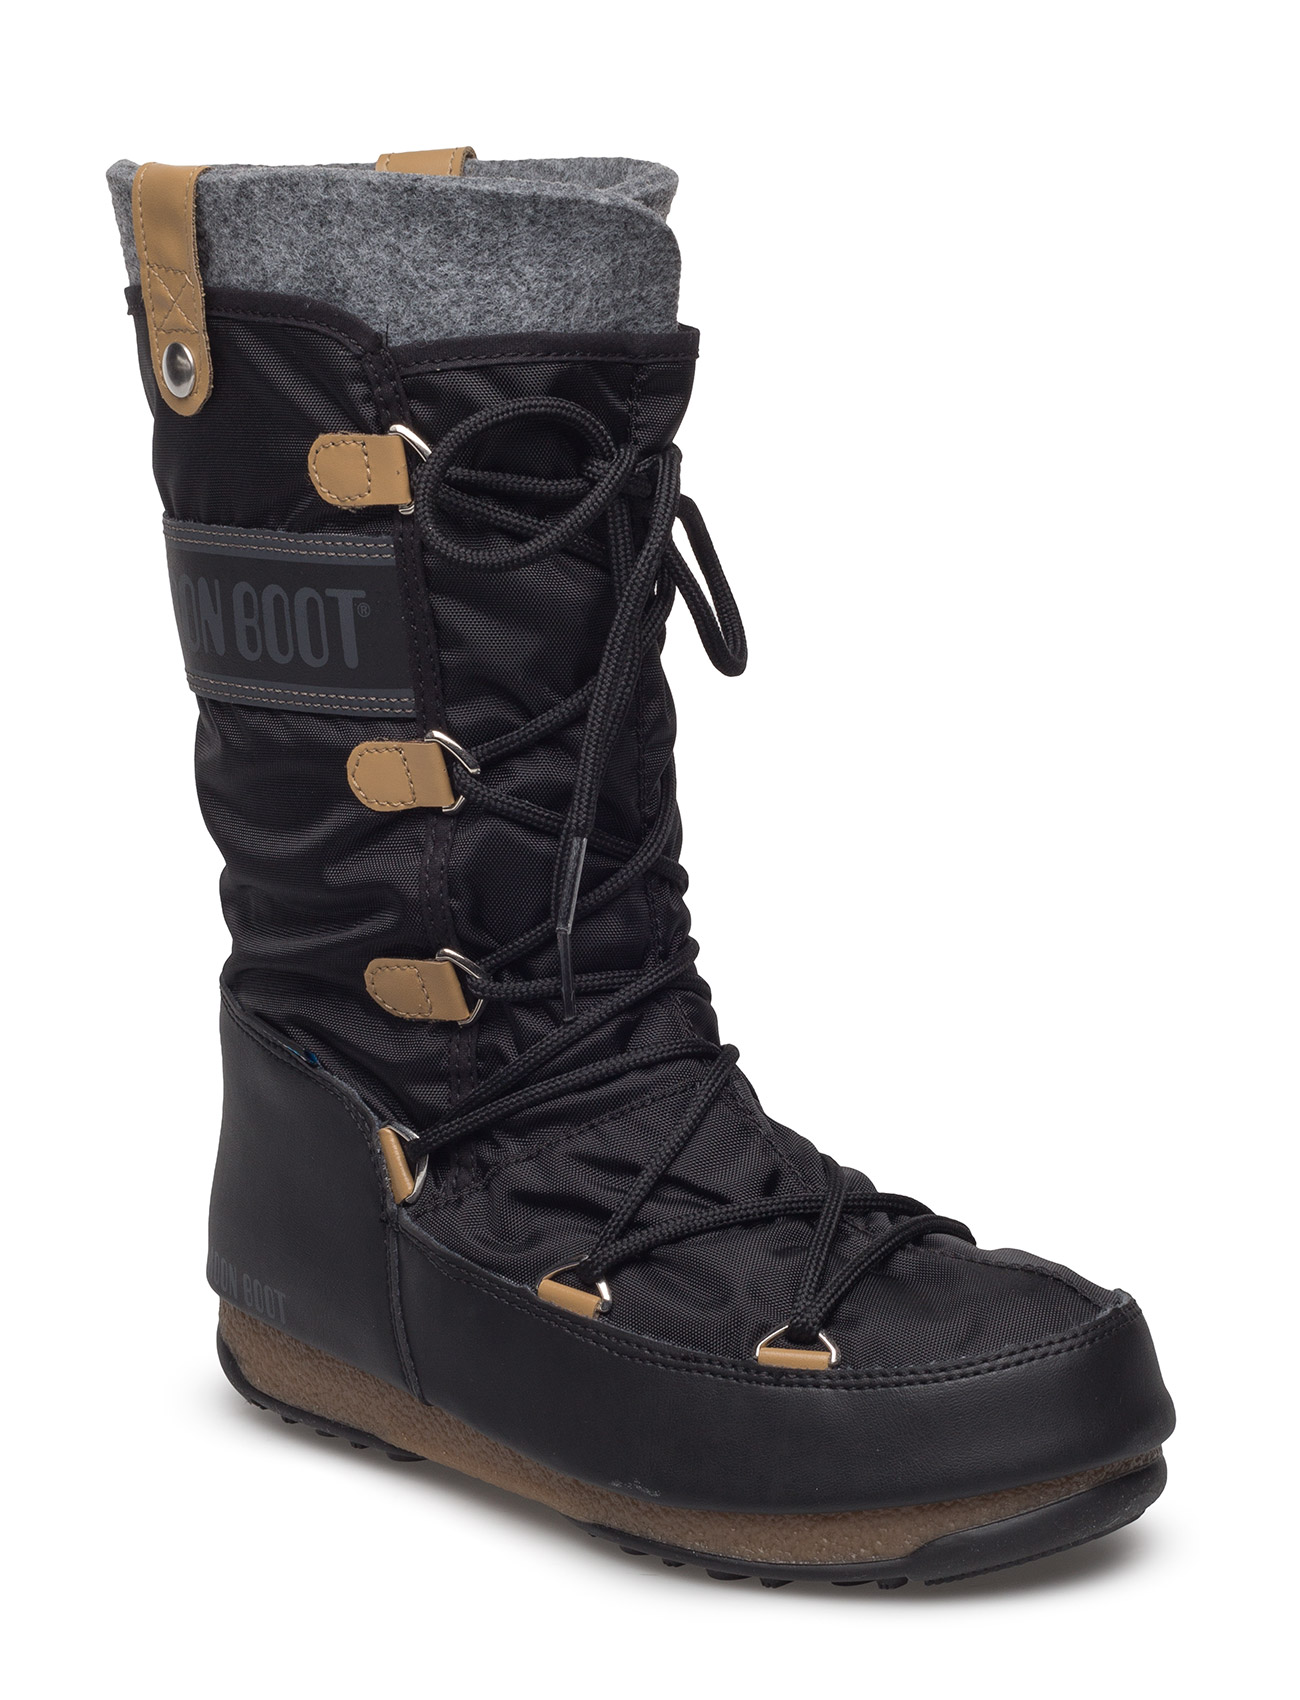 Mb Moon Boot W.E. Monaco Fel Moon Boot Støvler til Damer i